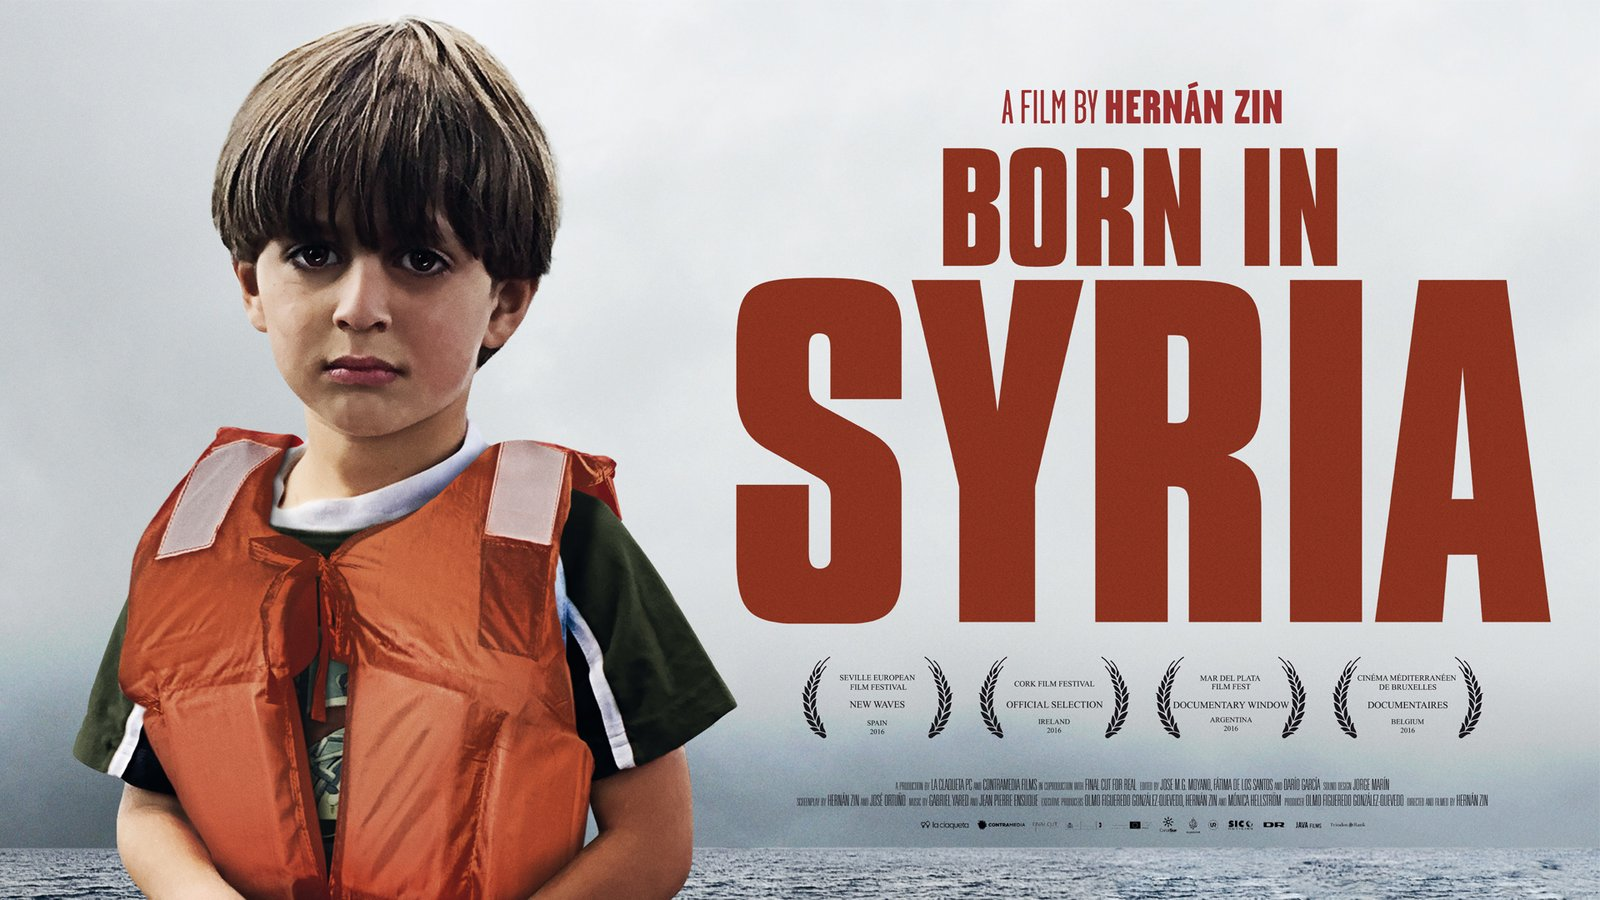 Born in Syria - Child Refugees of Syria's Civil War